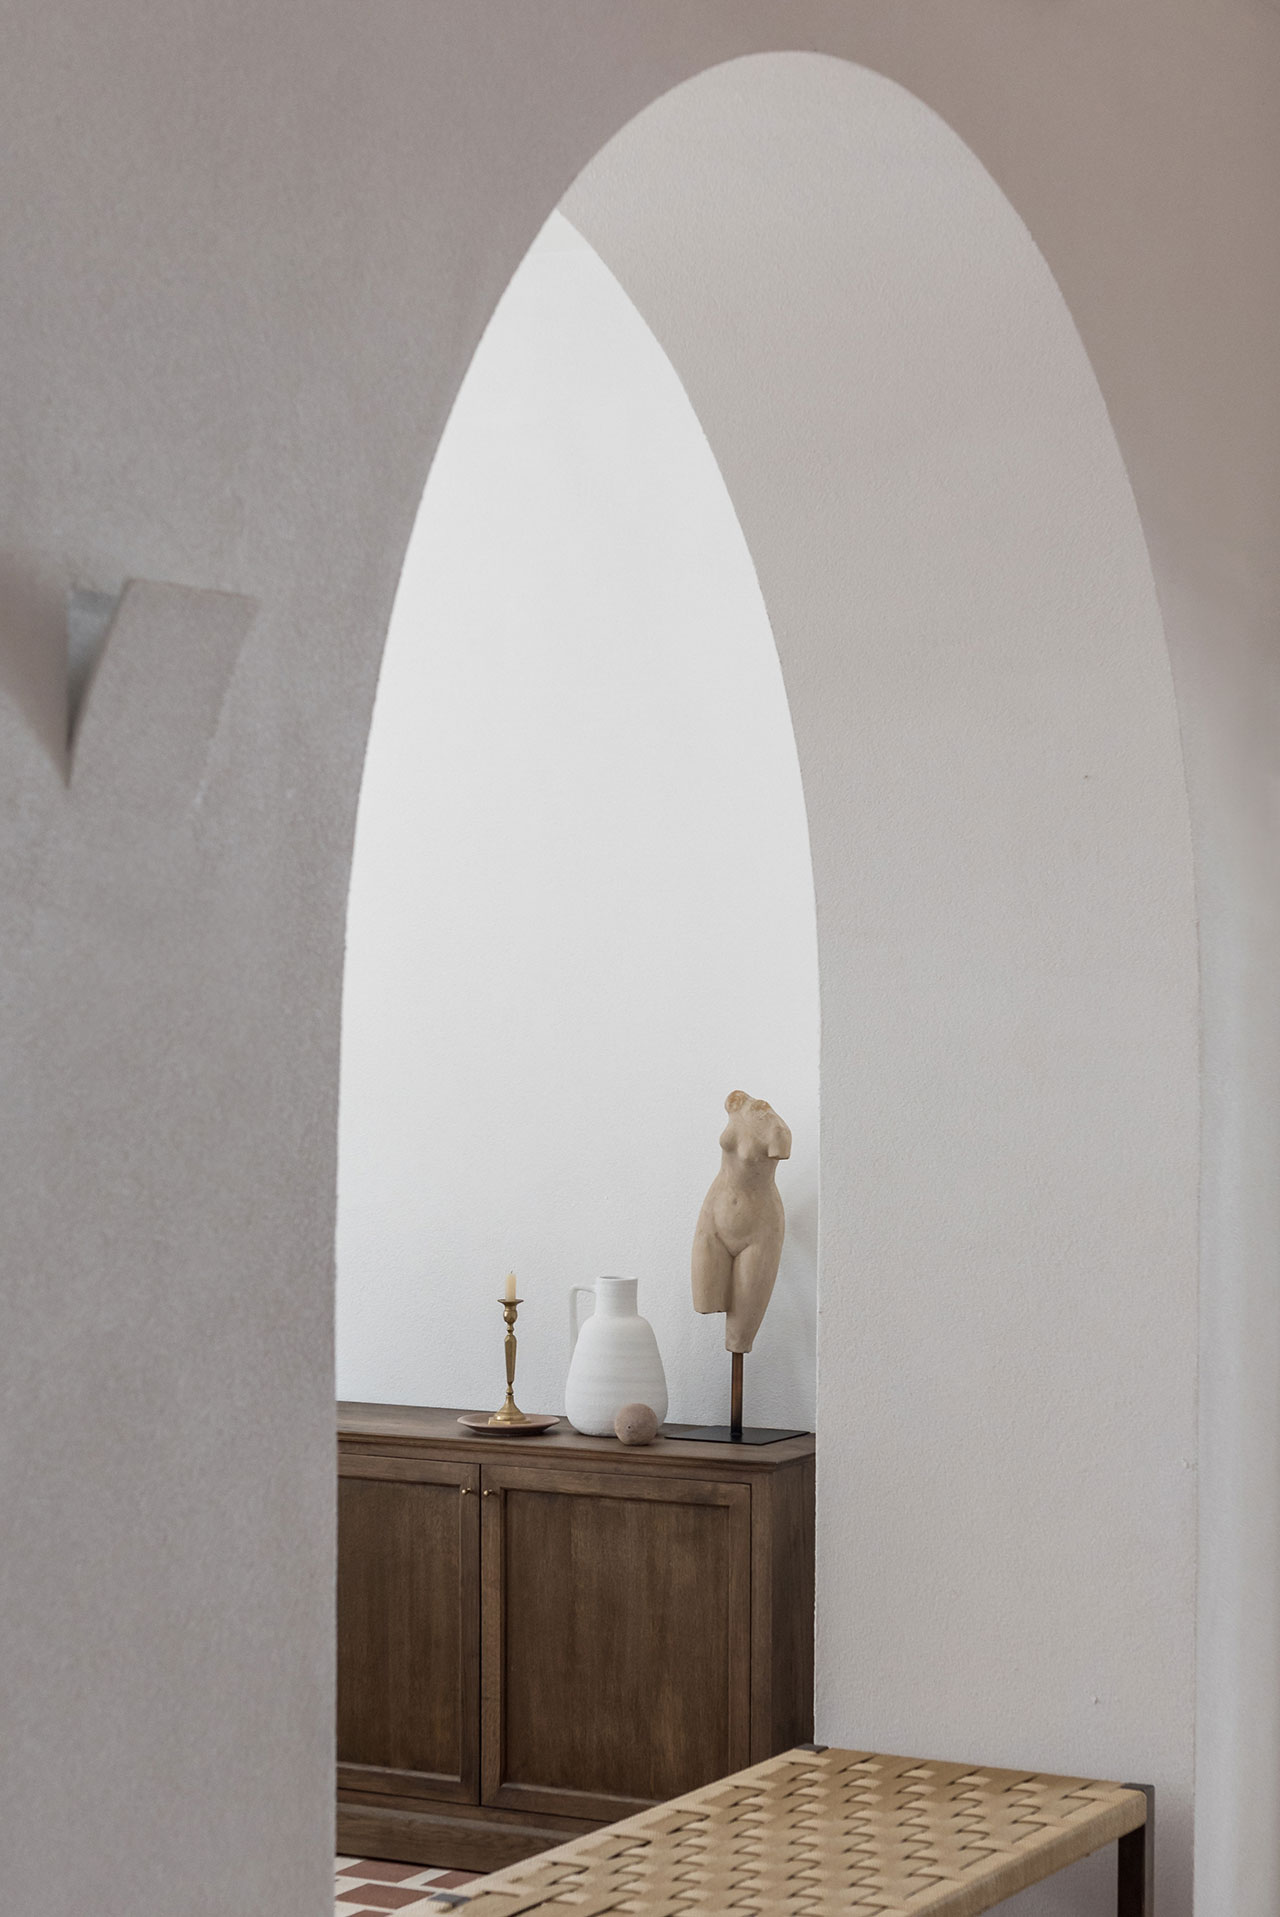 © Parīlio a member of Design Hotels™ | Kolympithres,Naoussa Paros, Greece.Photo by Giorgos Sfakianakis. Courtesy of Parīlio.